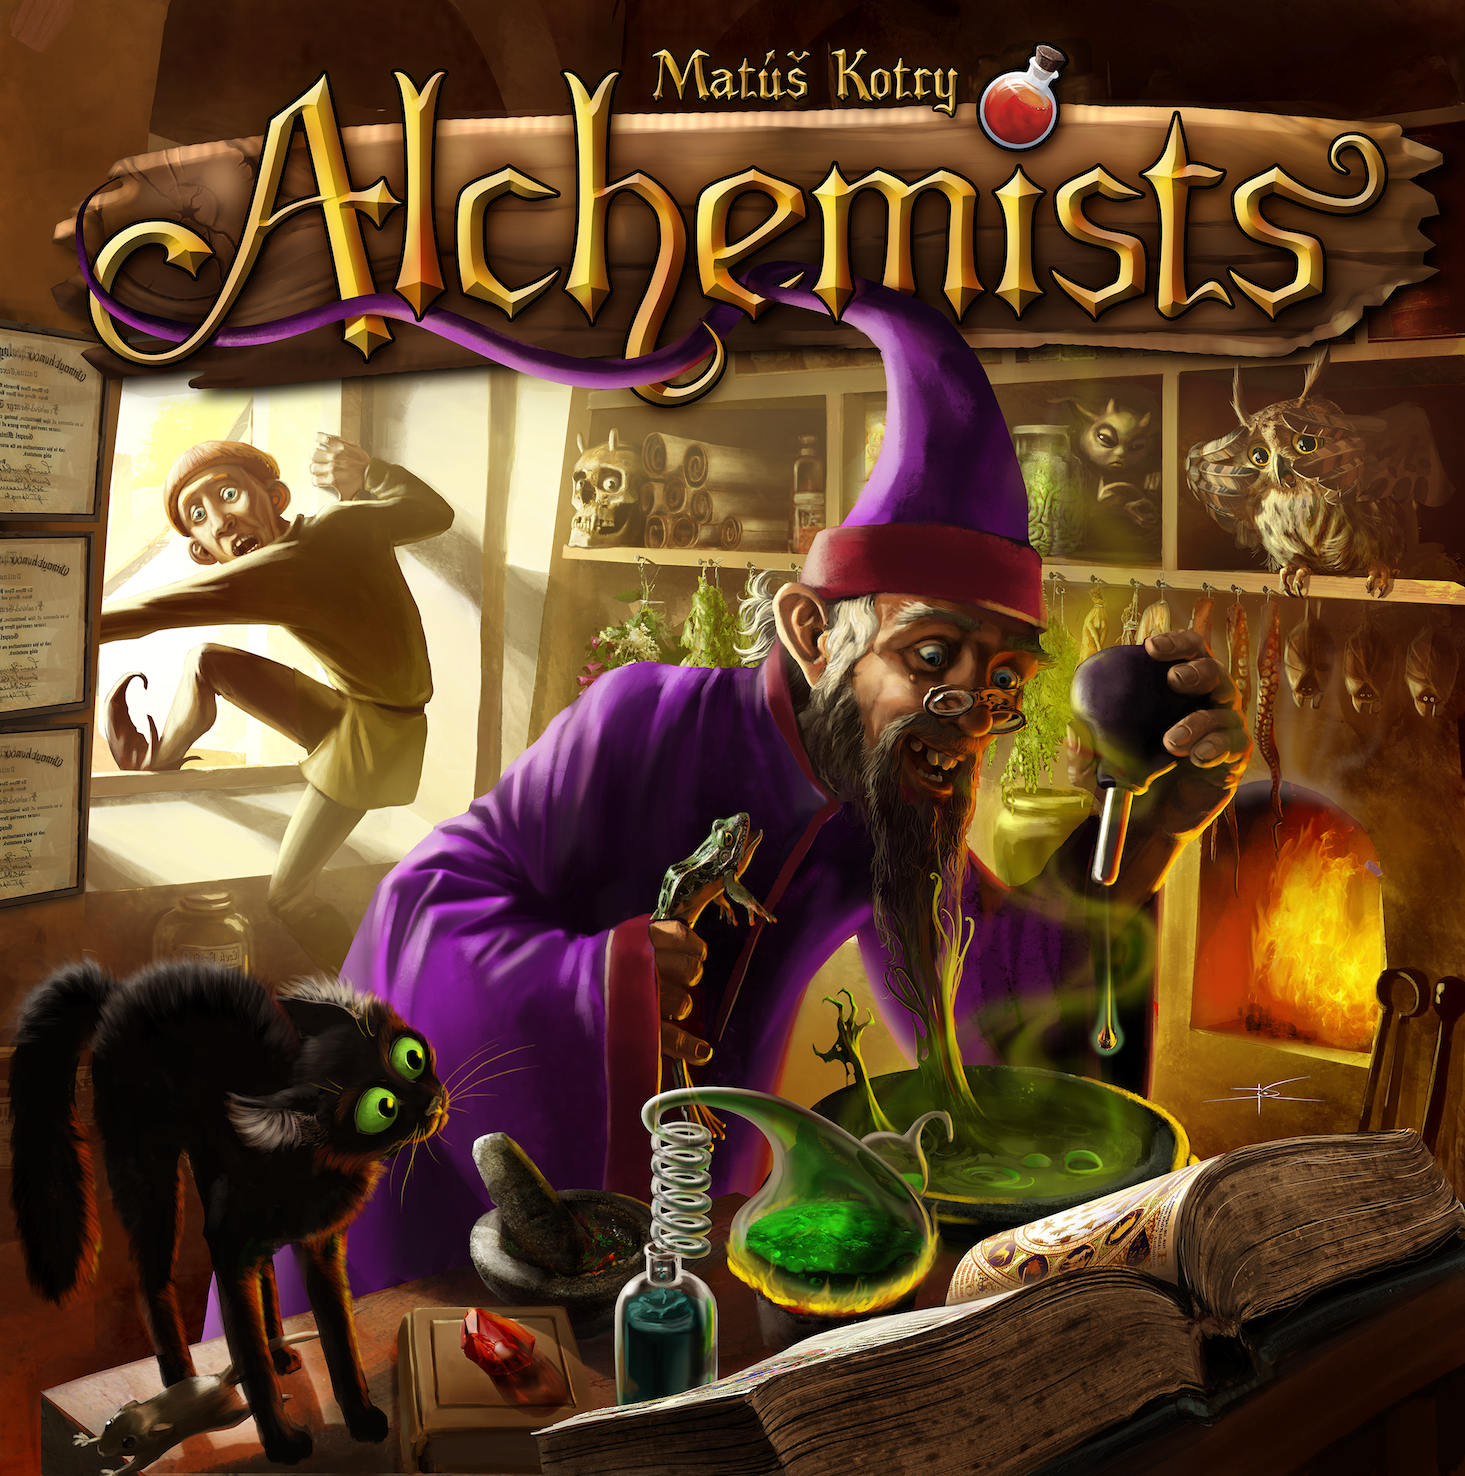 Main image for Alchemists board game